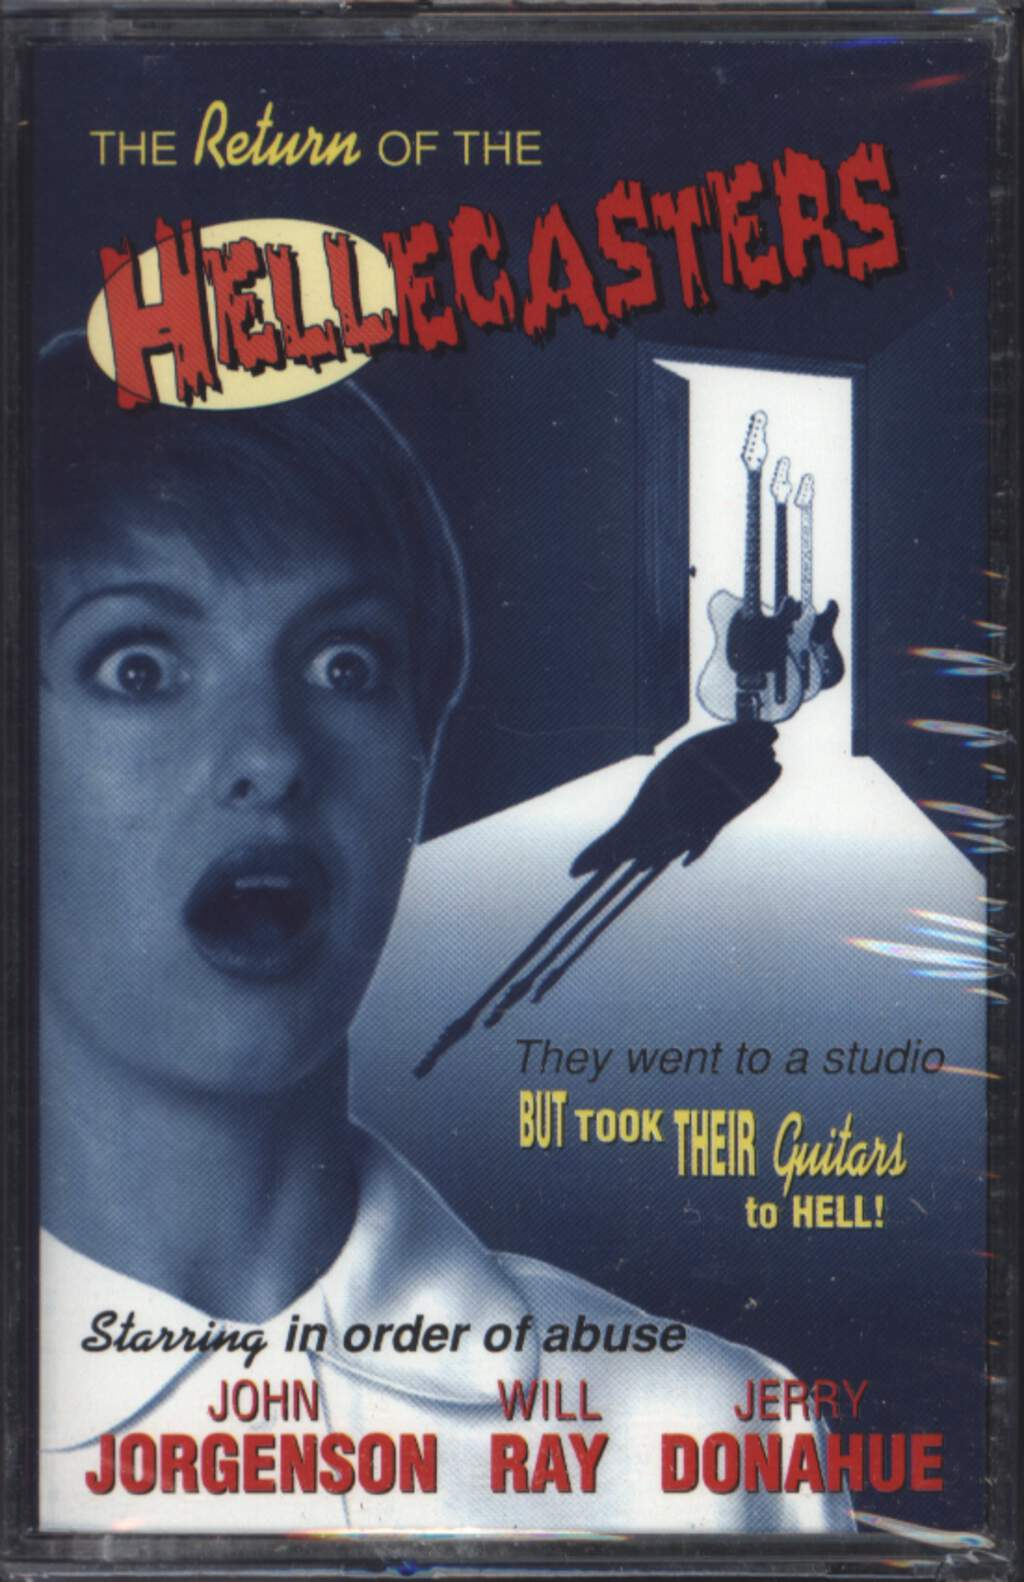 The Hellecasters: The Return Of The Hellecasters, Tape